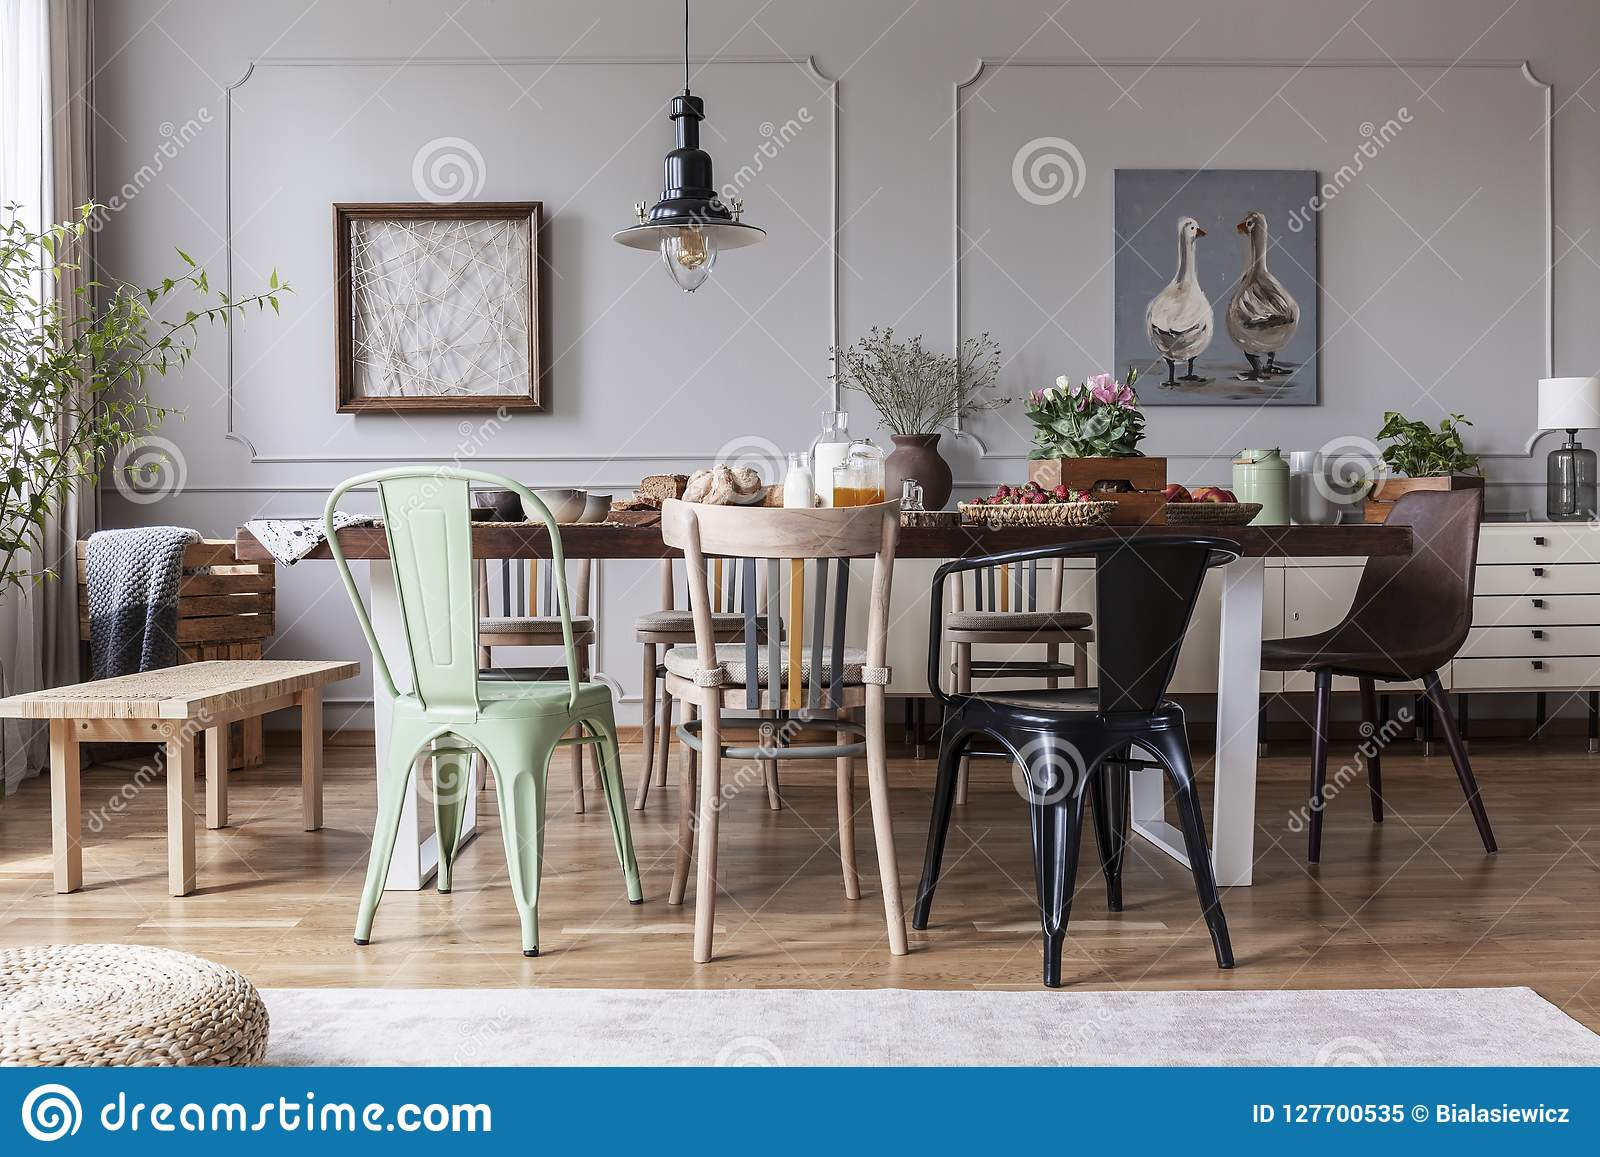 Lamp above wooden table with flowers in modern grey dining room interior with chairs. Real photo